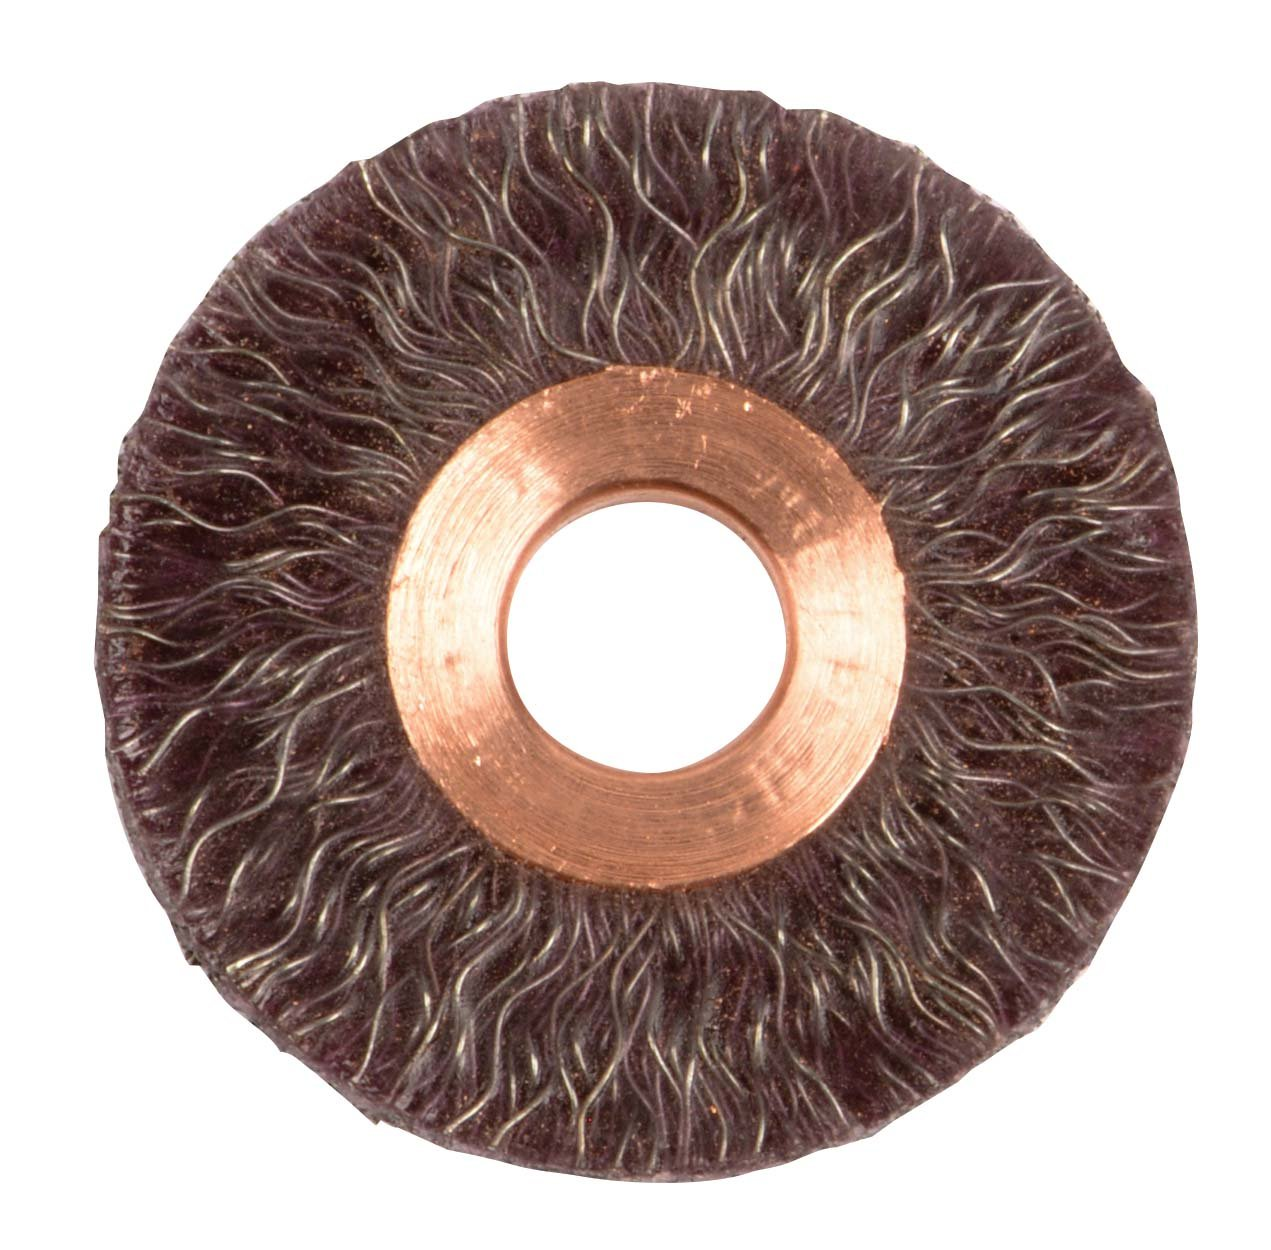 1//2 Arbor Hole 2 Small Diameter Pack of 10 0.14 Steel Fill Weiler 35070 Polyflex Encapsulated Crimped Wire Wheel